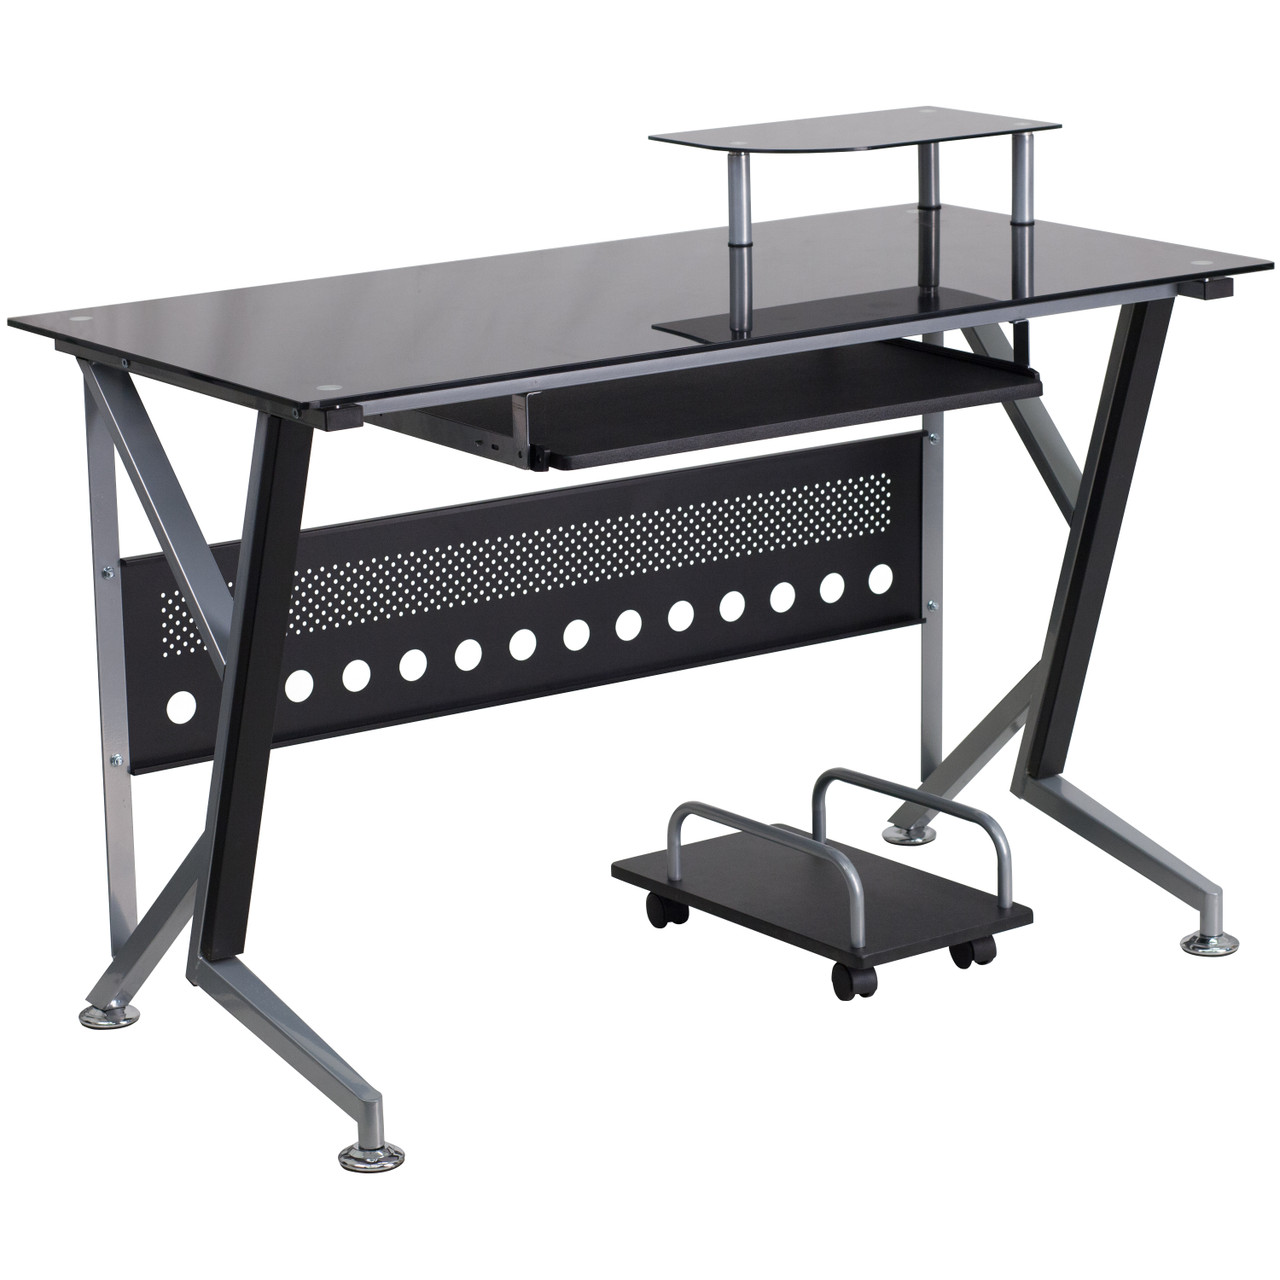 The Black Glass Computer Desk With Pull Out Keyboard Tray And Cpu Cart Available At Acf Wholesale Serving Columbus Ms